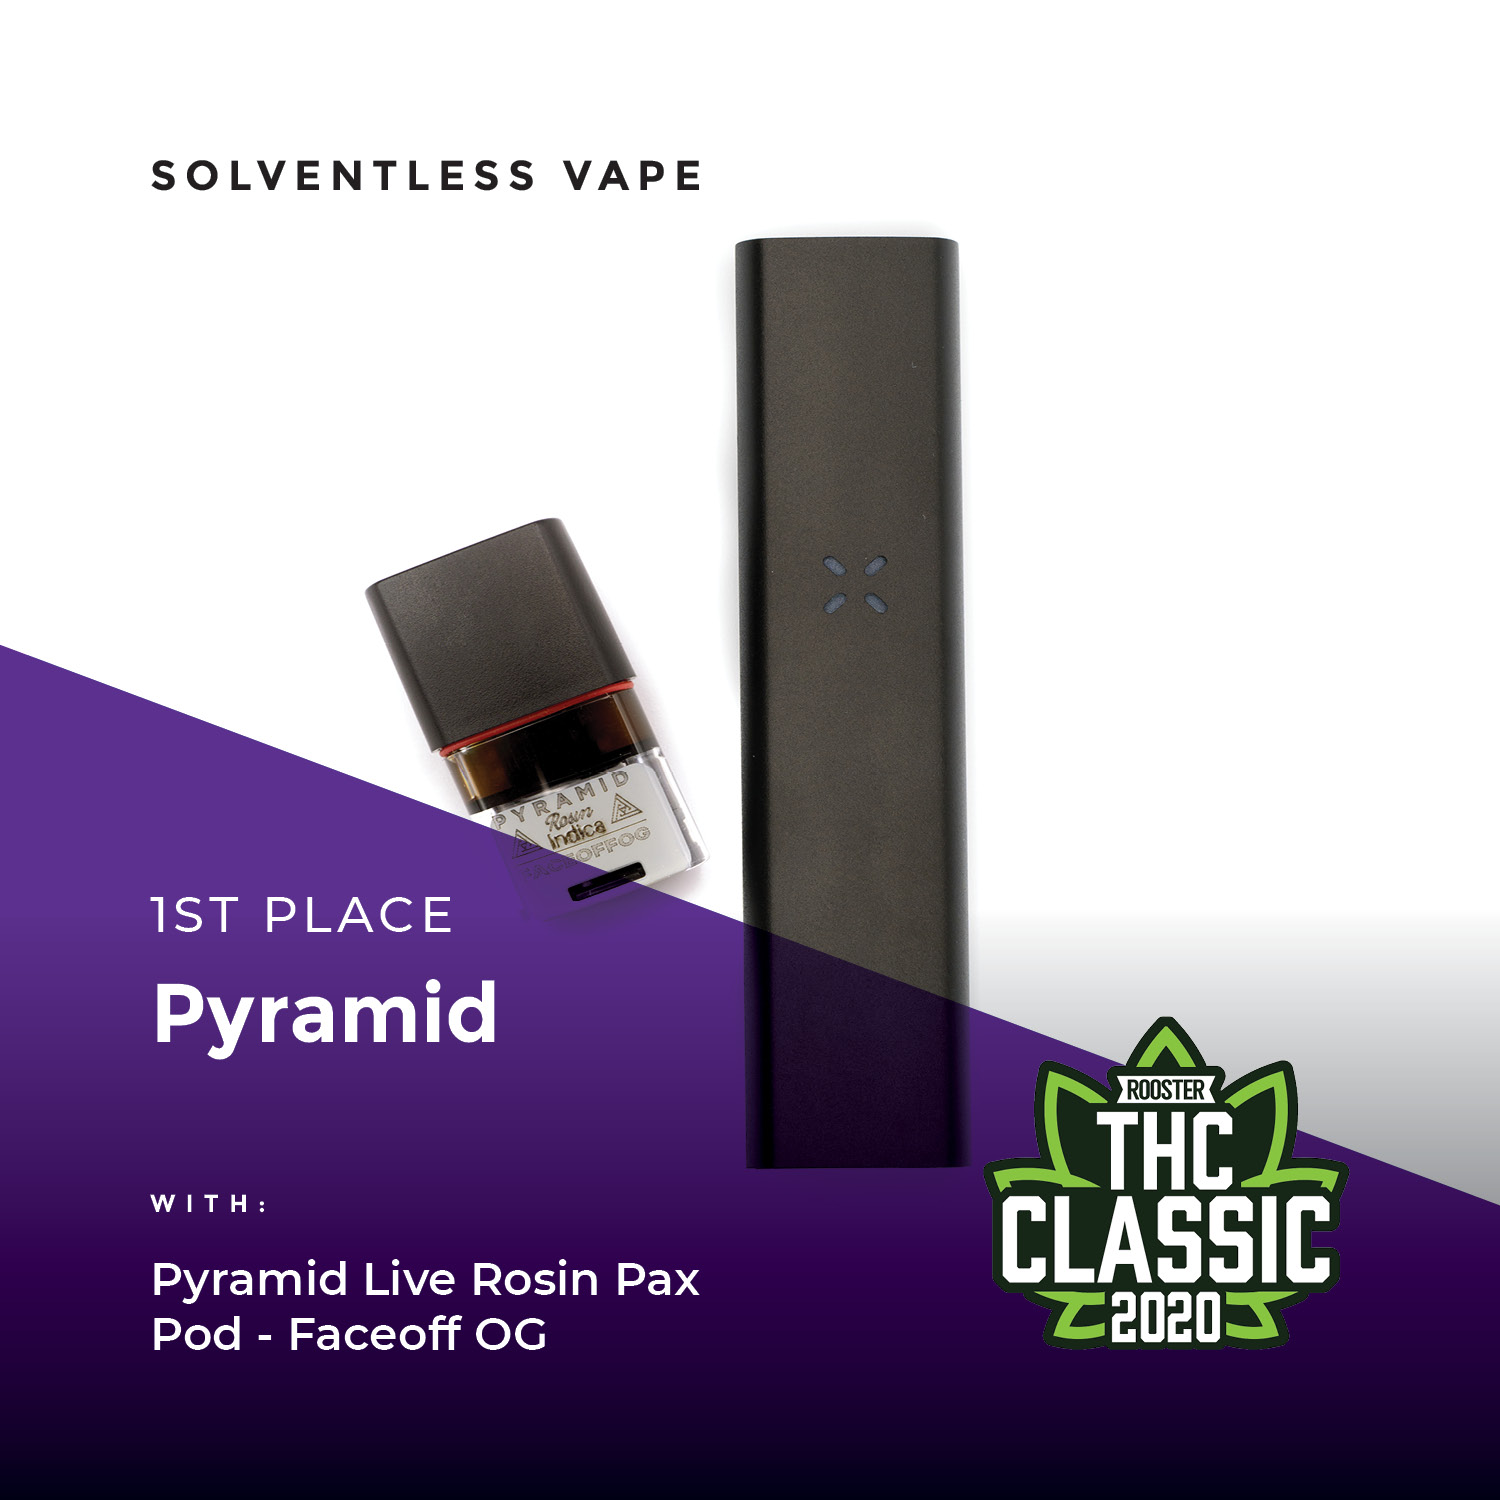 Best Colorado Cannabis Products: Solventless Vape